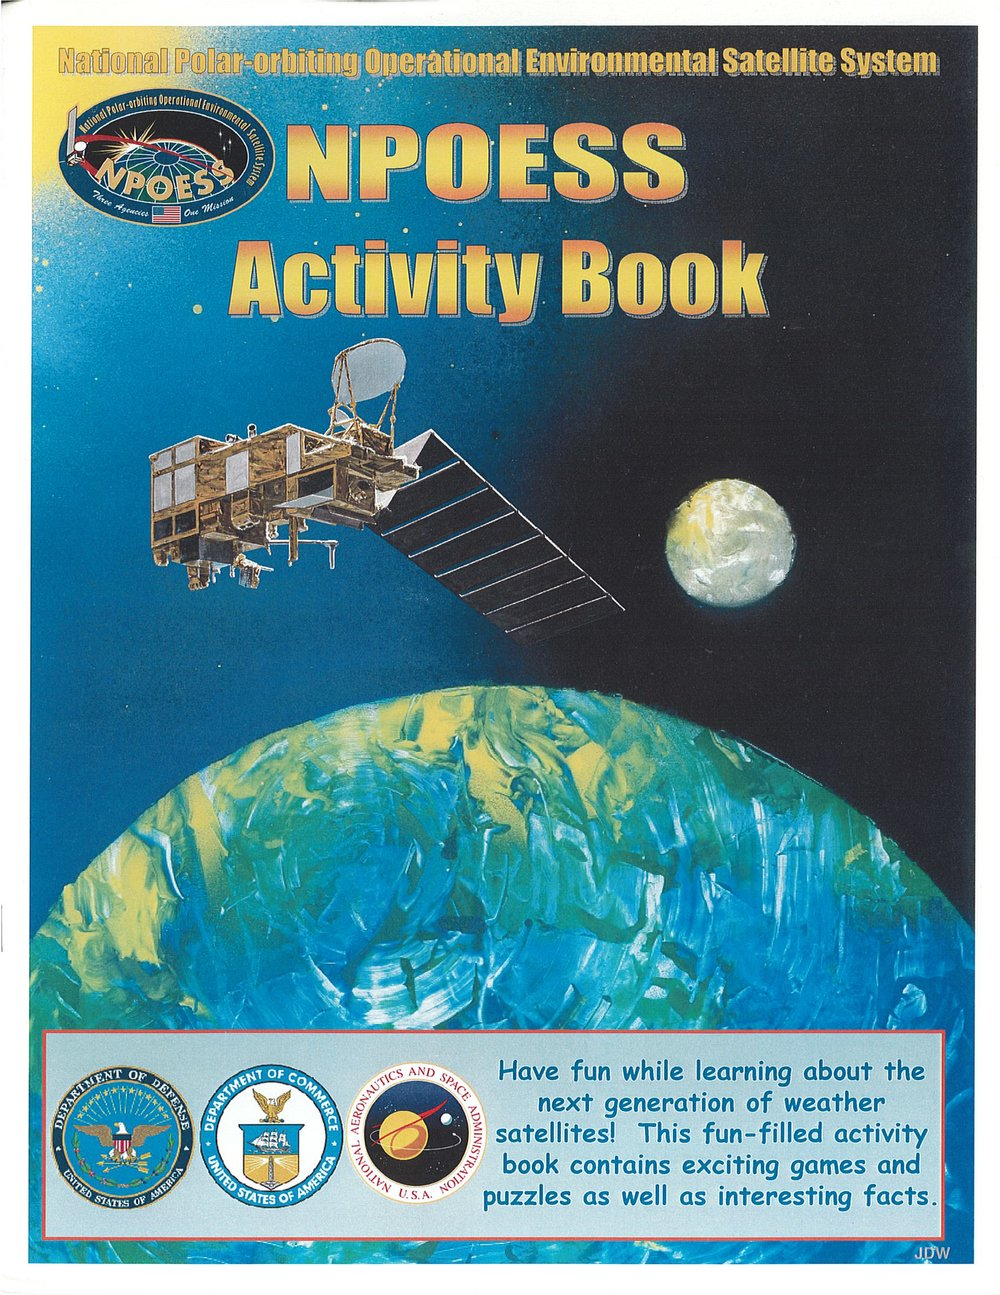 Erica Handlemann and Jane Whitcomb,  NPOESS Activity Book  (Department of Defense, Department of Commerce, and NASA. March 2007).